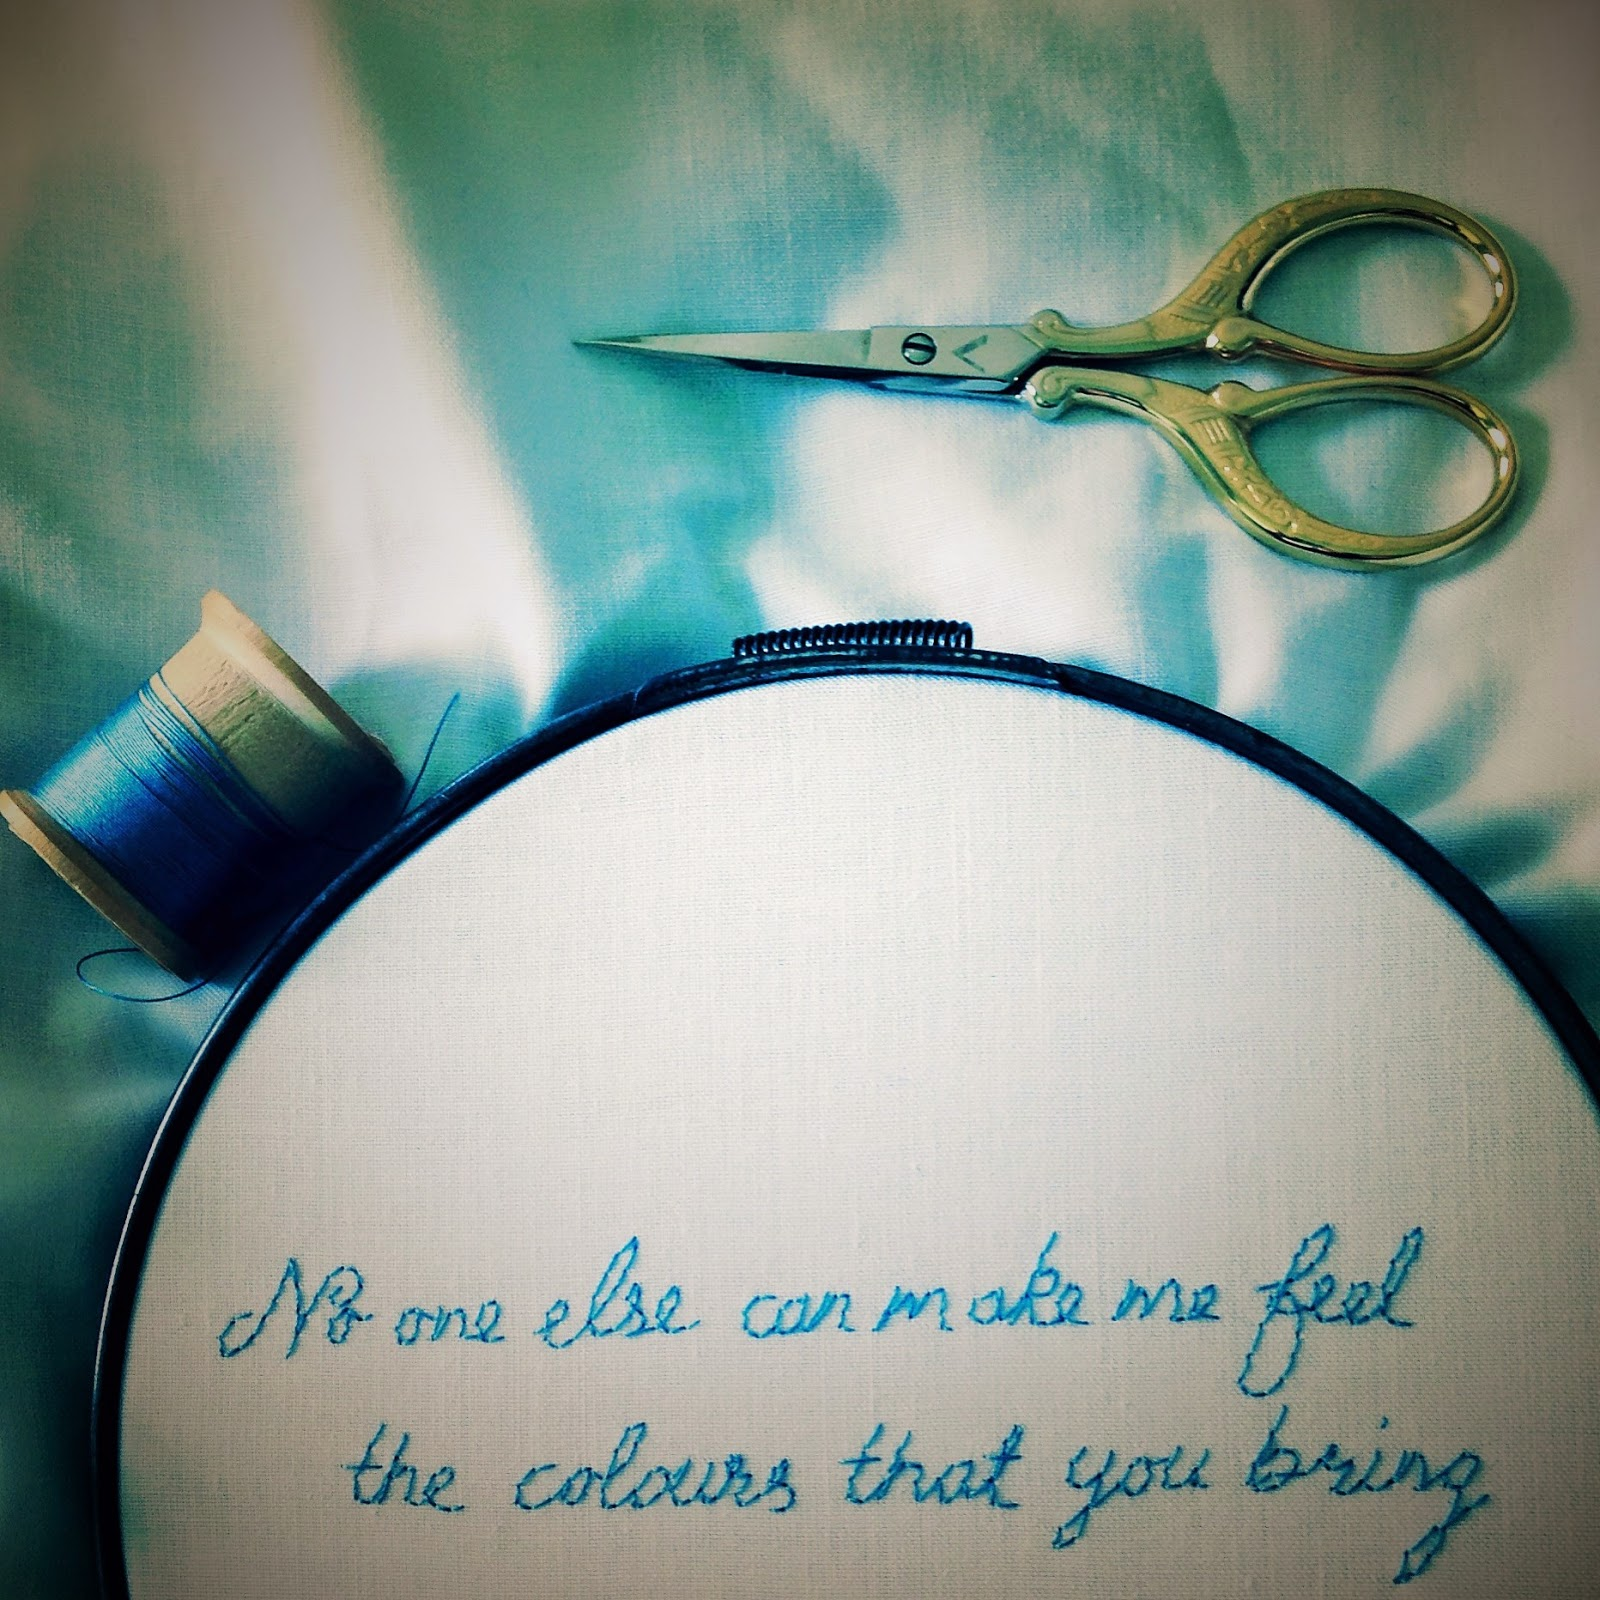 embroidered lyrics noone else can make me feel the colours that you bring